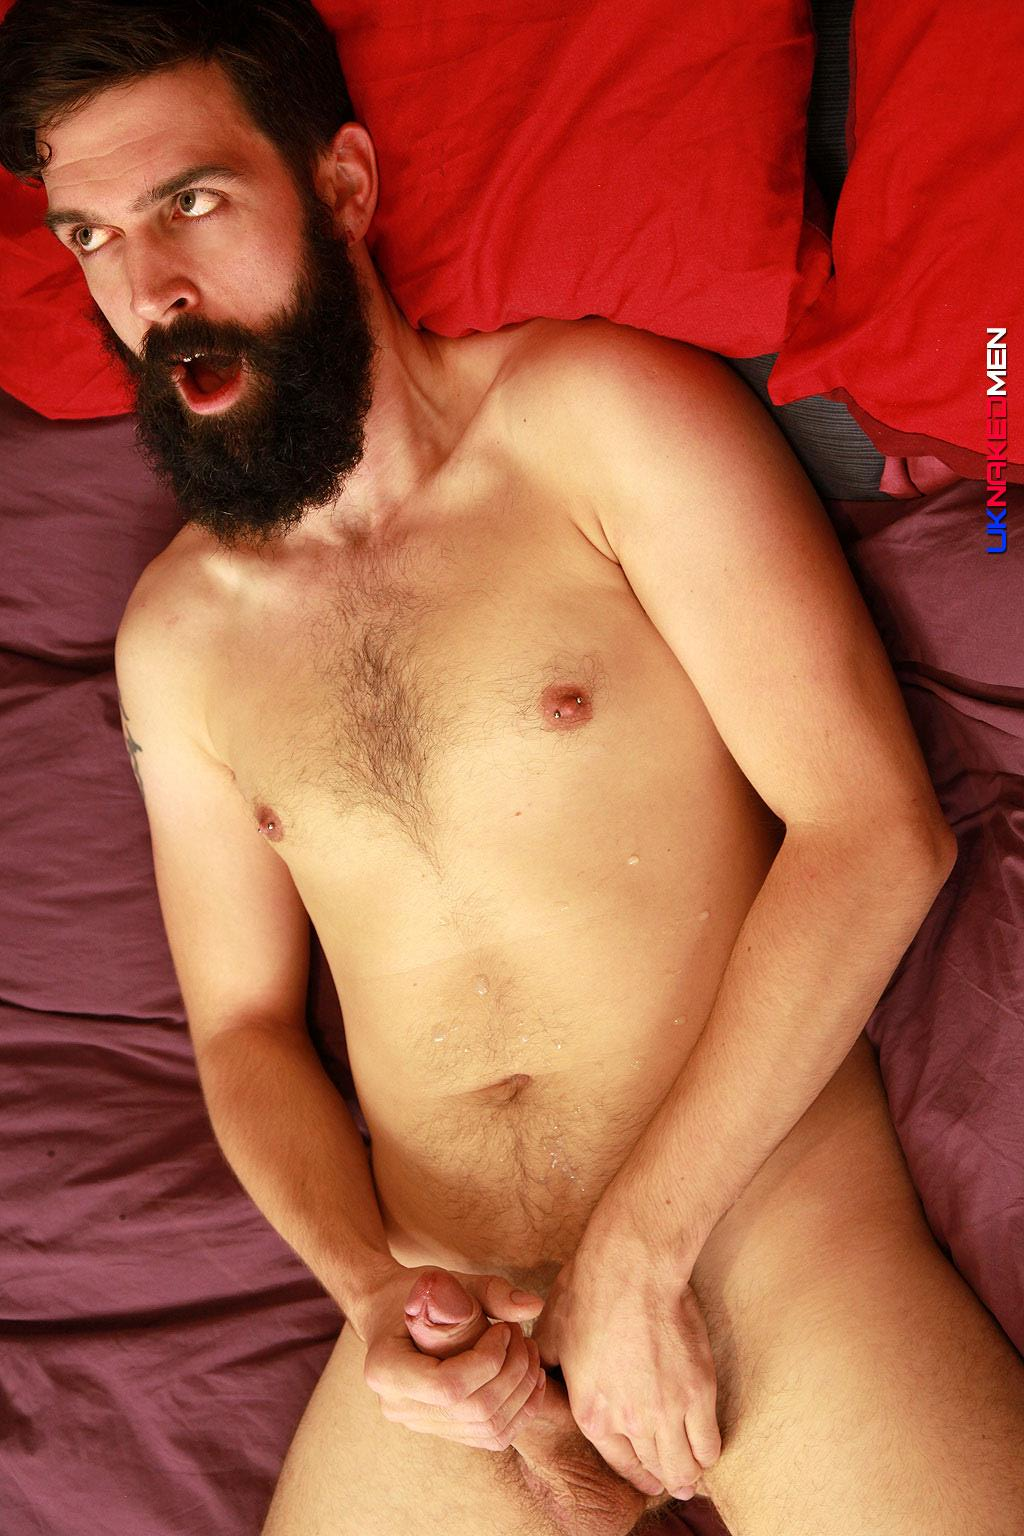 UK Naked Men Tom Long Bearded Guy With A Big Uncut Cock Jerk Off Amateur Gay Porn 13 Bearded Guy From England Jerking His Big Uncut Cock